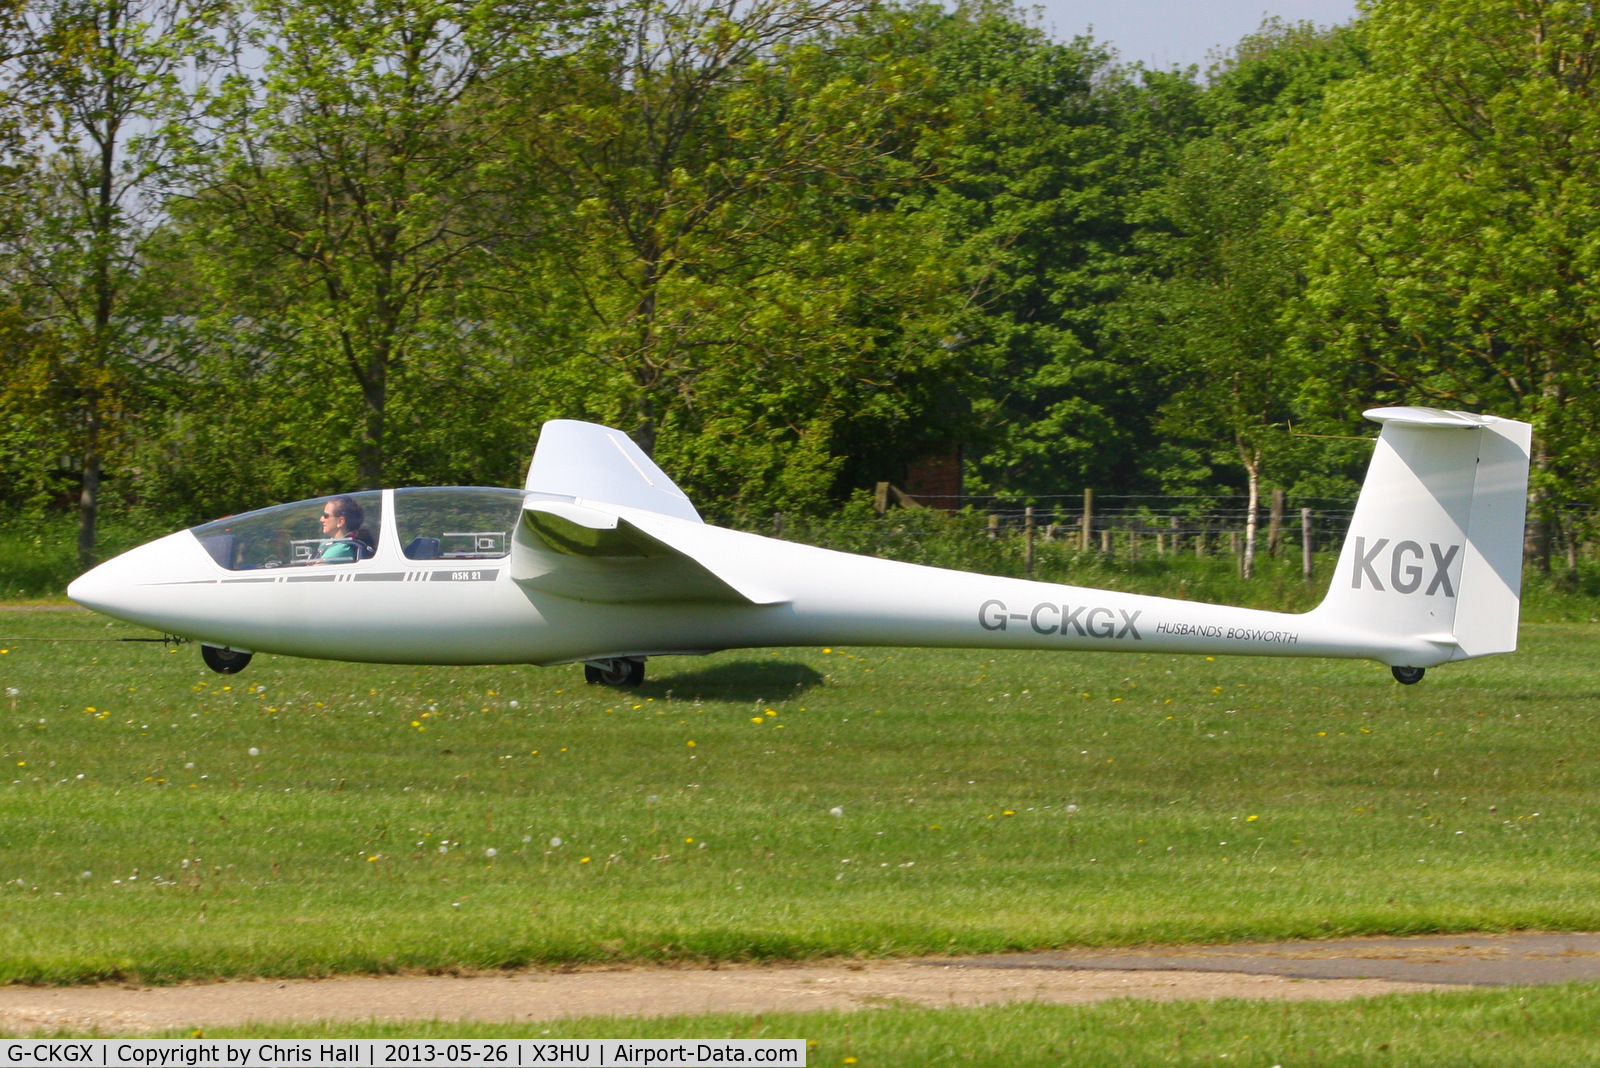 G-CKGX, 2004 Schleicher ASK-21 C/N 21782, Coventry Gliding Club, Husbands Bosworth